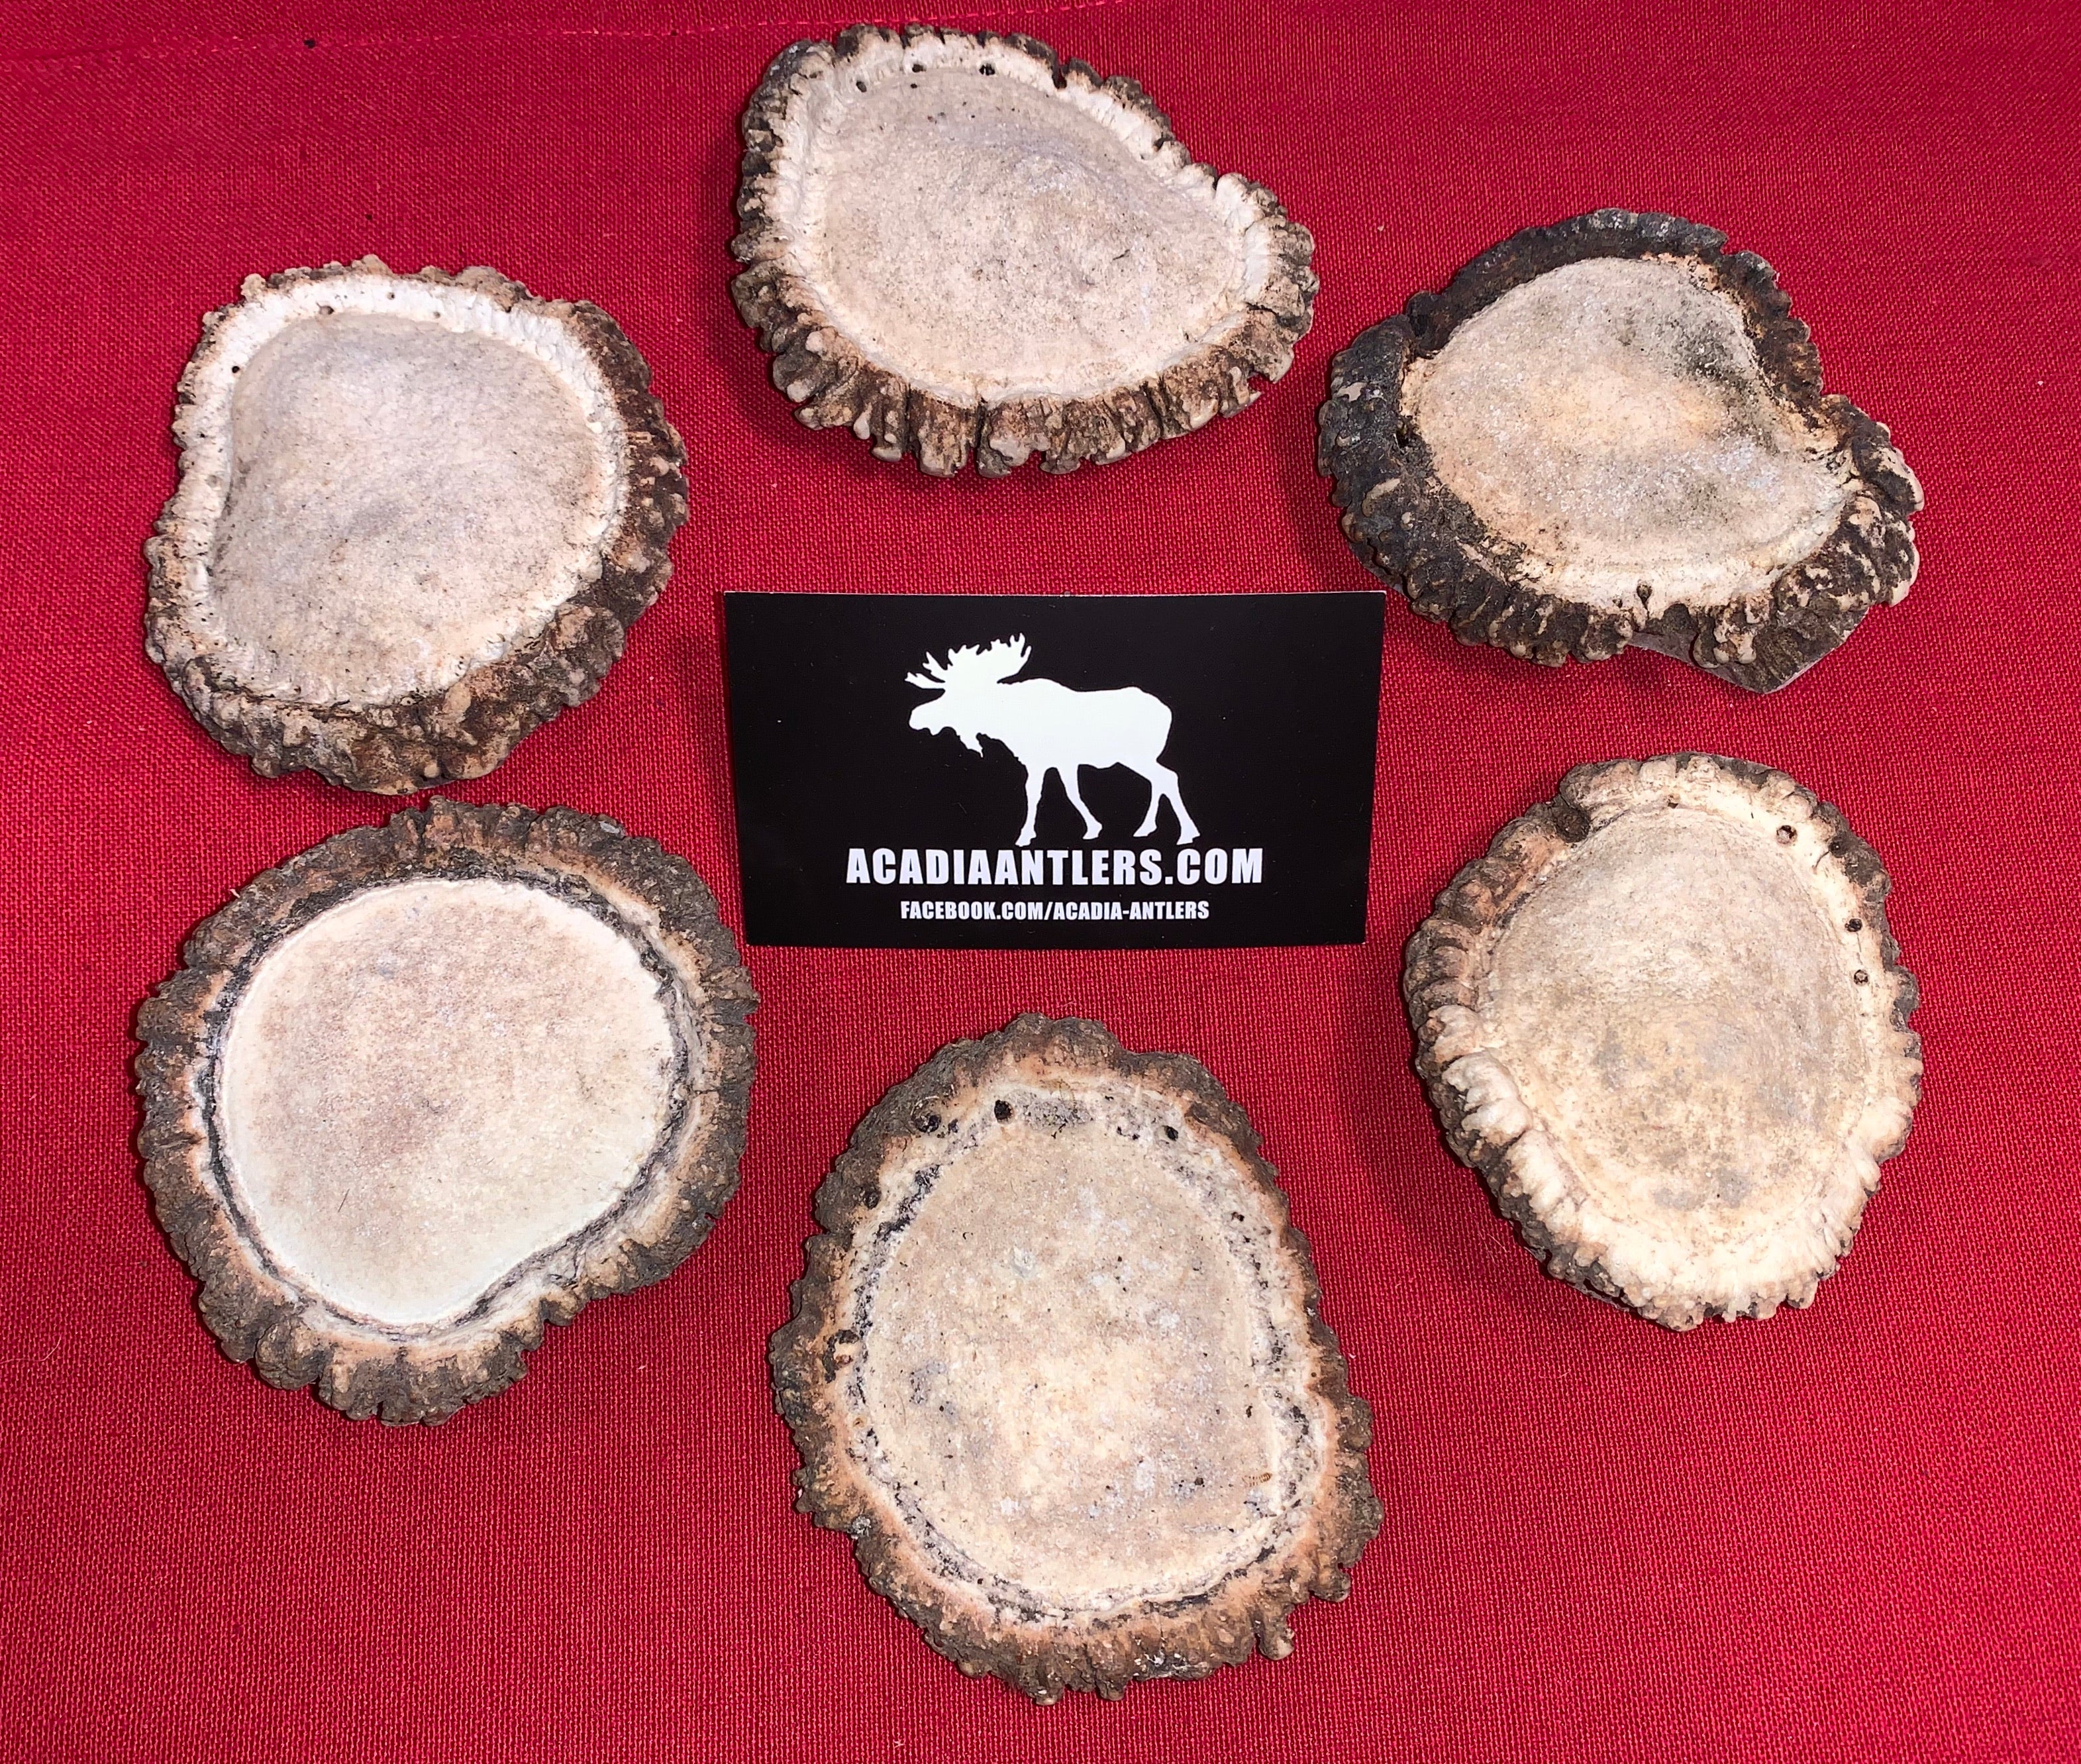 DEAL!!  Buy 5 Get 1 FREE Original or Flavored Antler Burrs $50 limited time only